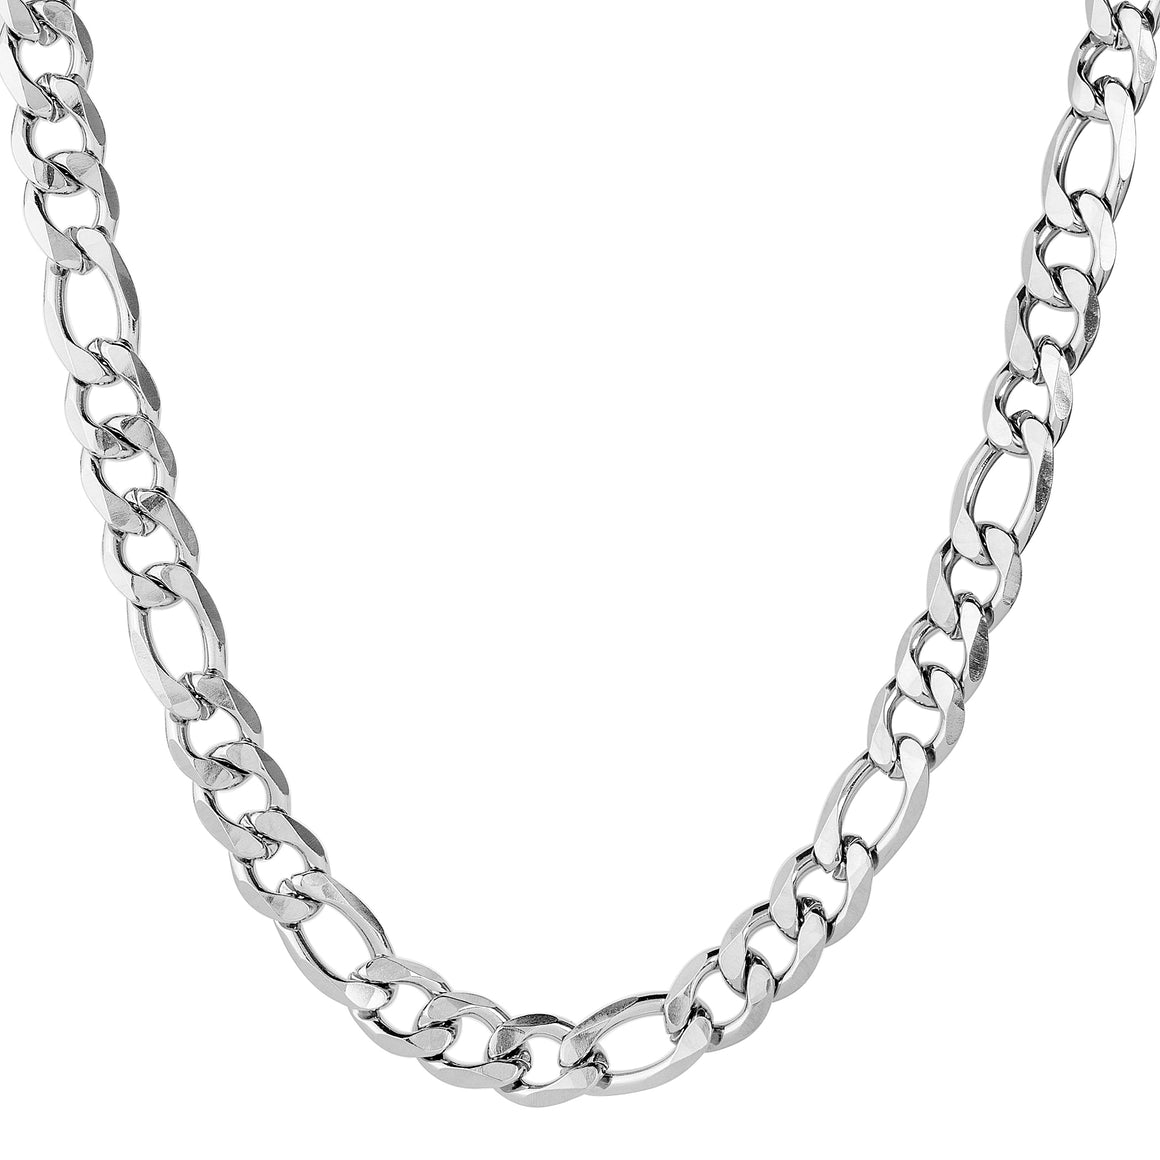 Crucible Men's Stainless Steel Polished Beveled Figaro Chain Necklace